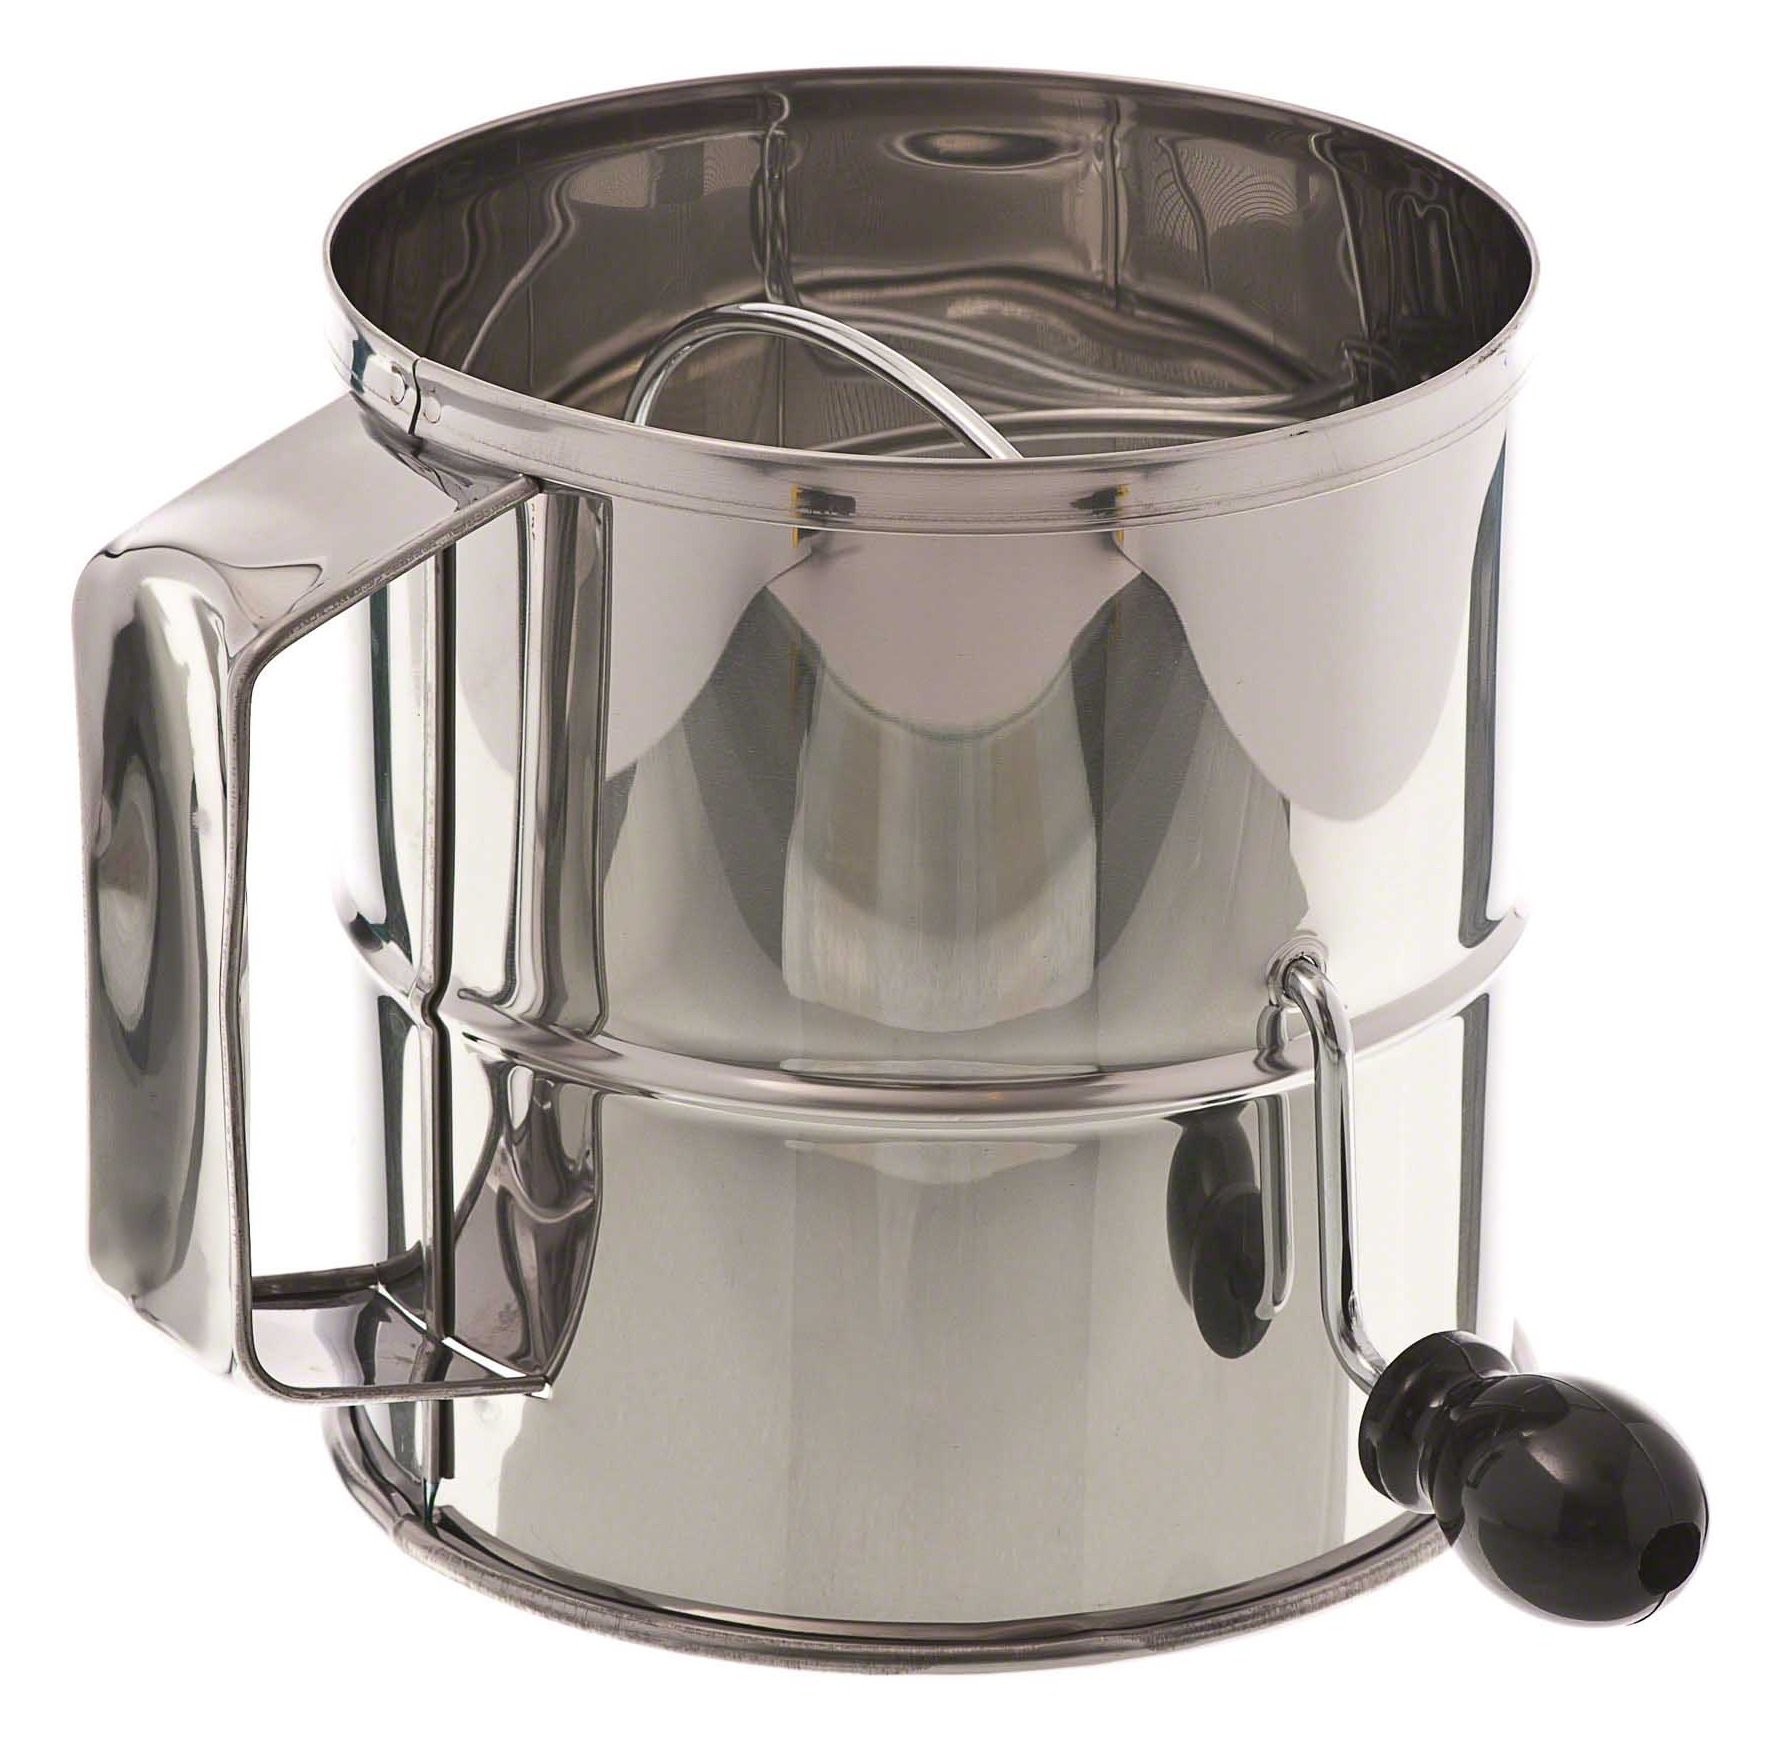 Browne (1260) 8-Cup Stainless Steel Flour Sifter